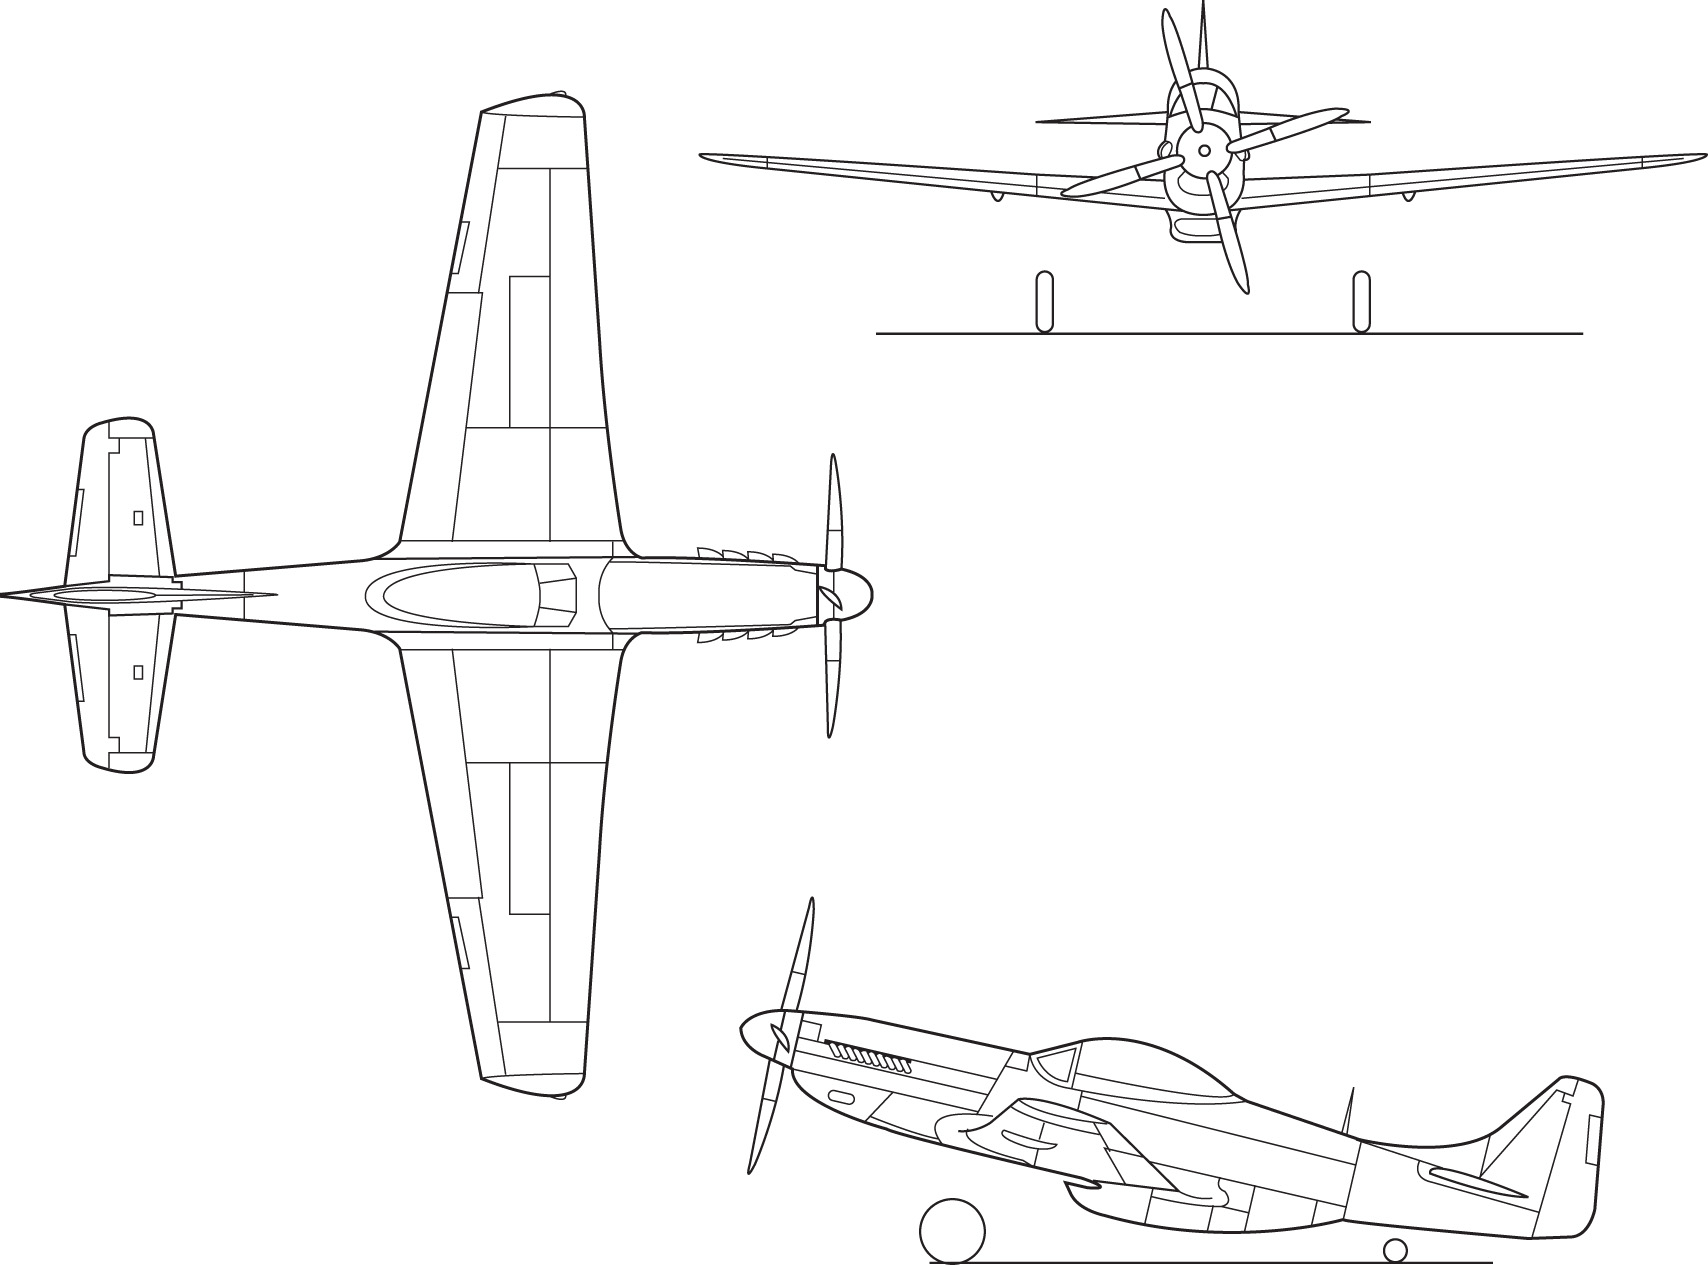 Drawn aircraft mustang #15